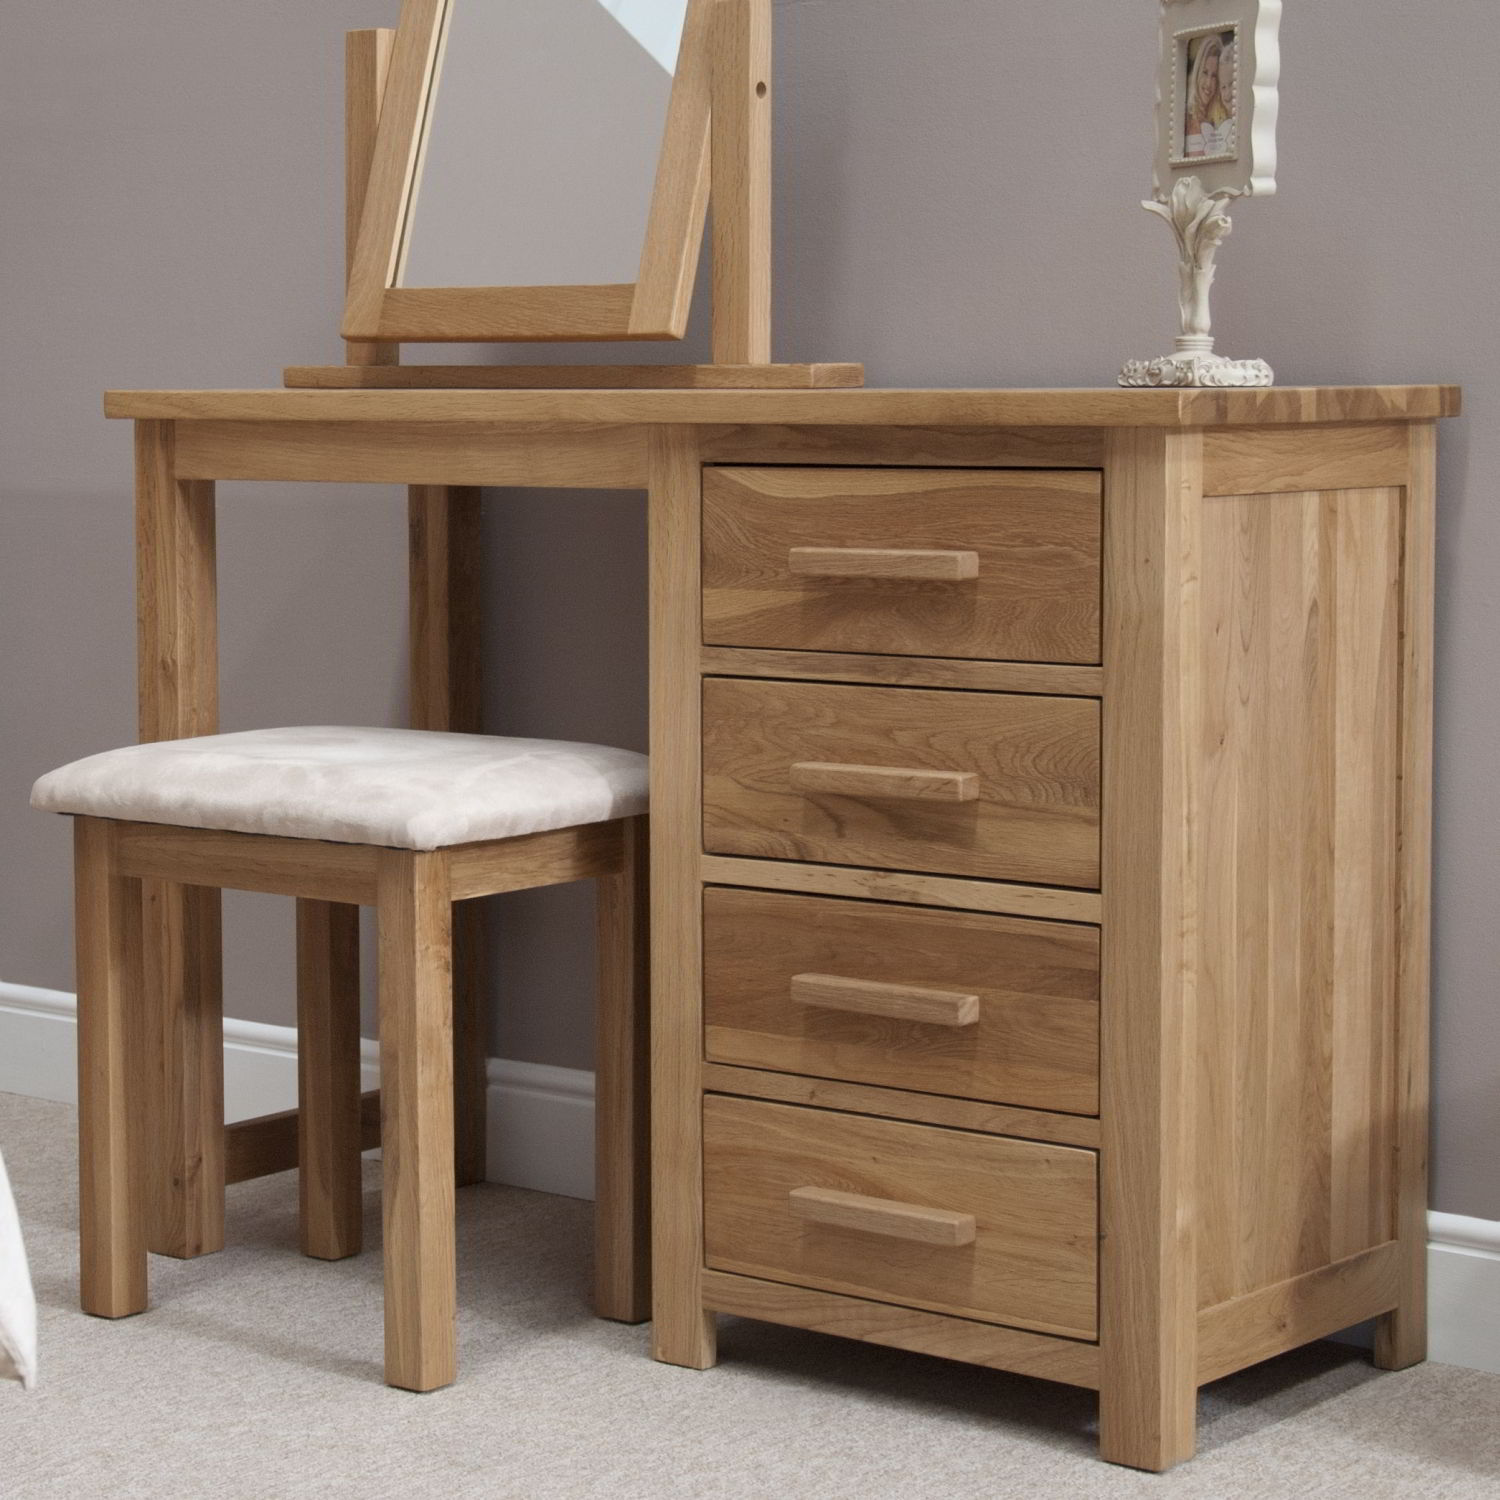 Bedroom furniture dressing table - Eton Solid Oak Contemporary Bedroom Furniture Dressing Table With Stool